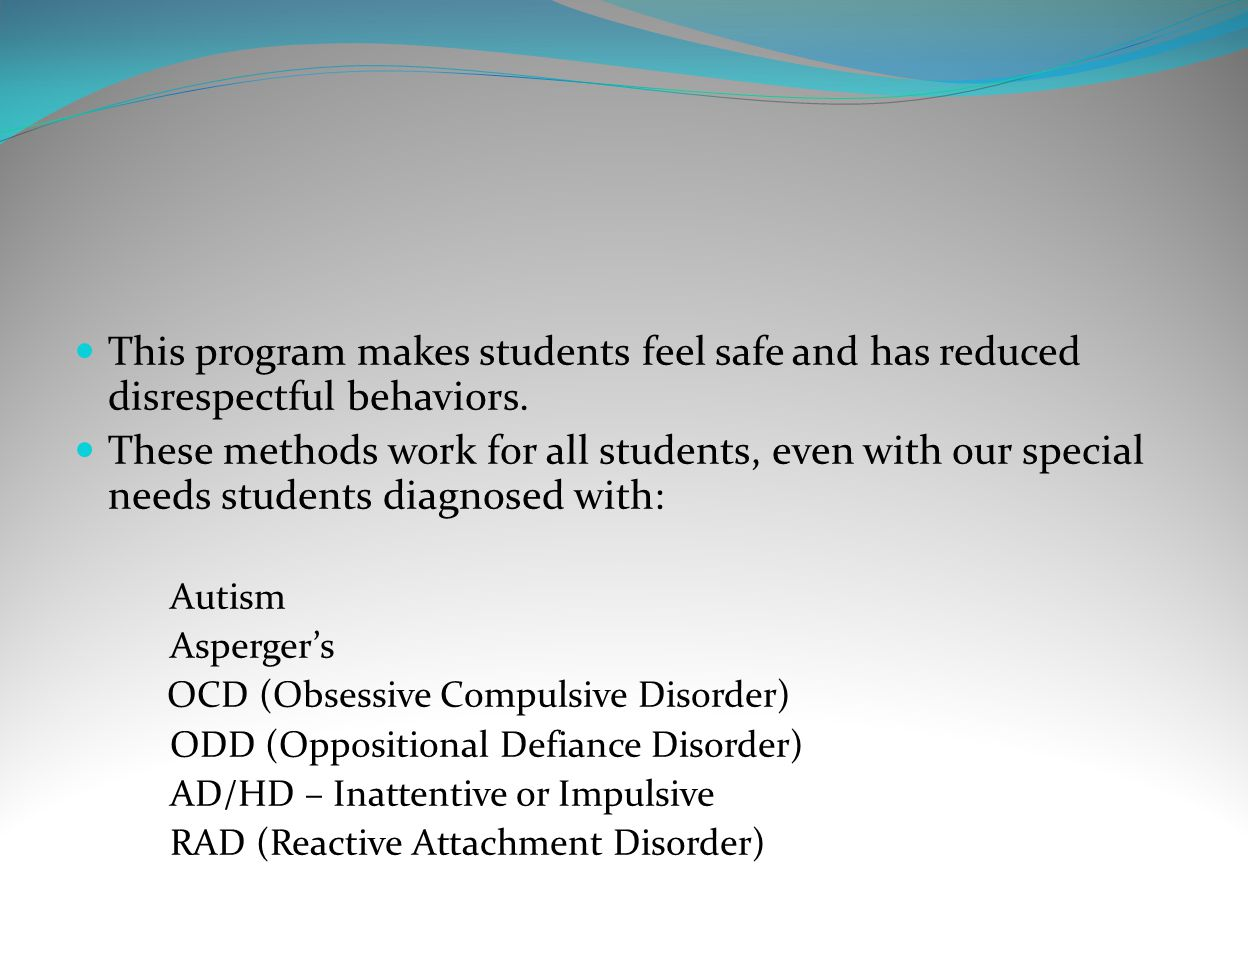 This program makes students feel safe and has reduced disrespectful behaviors.